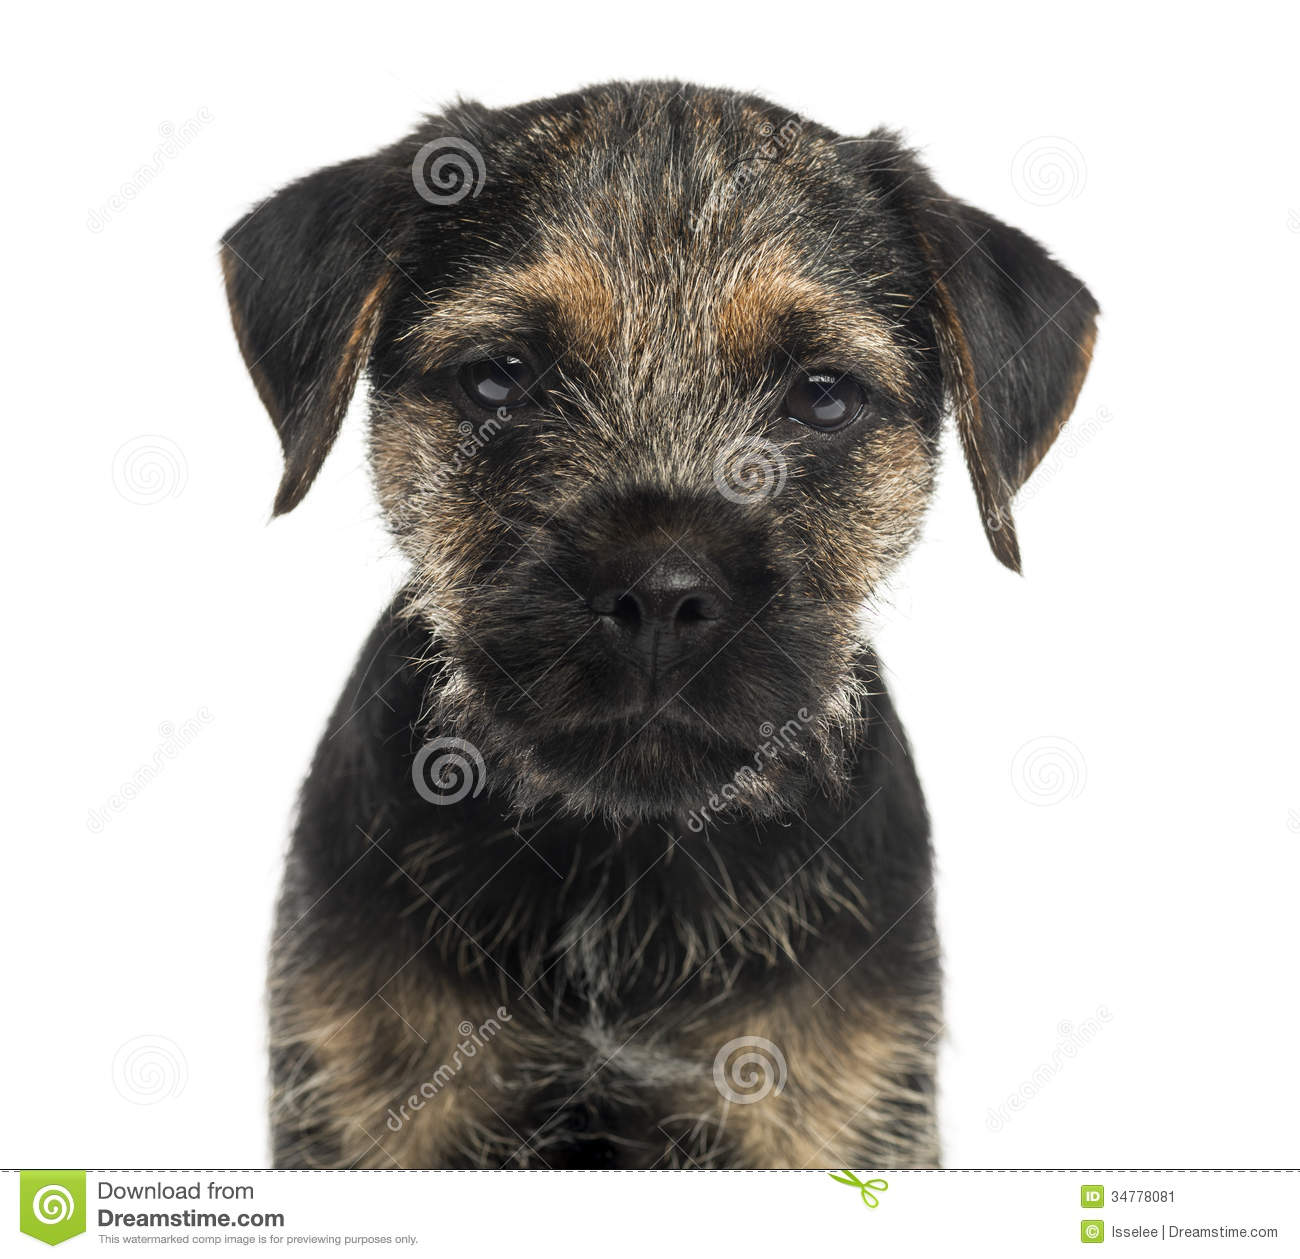 Close-up of a Border Terrier puppy, looking at the camera